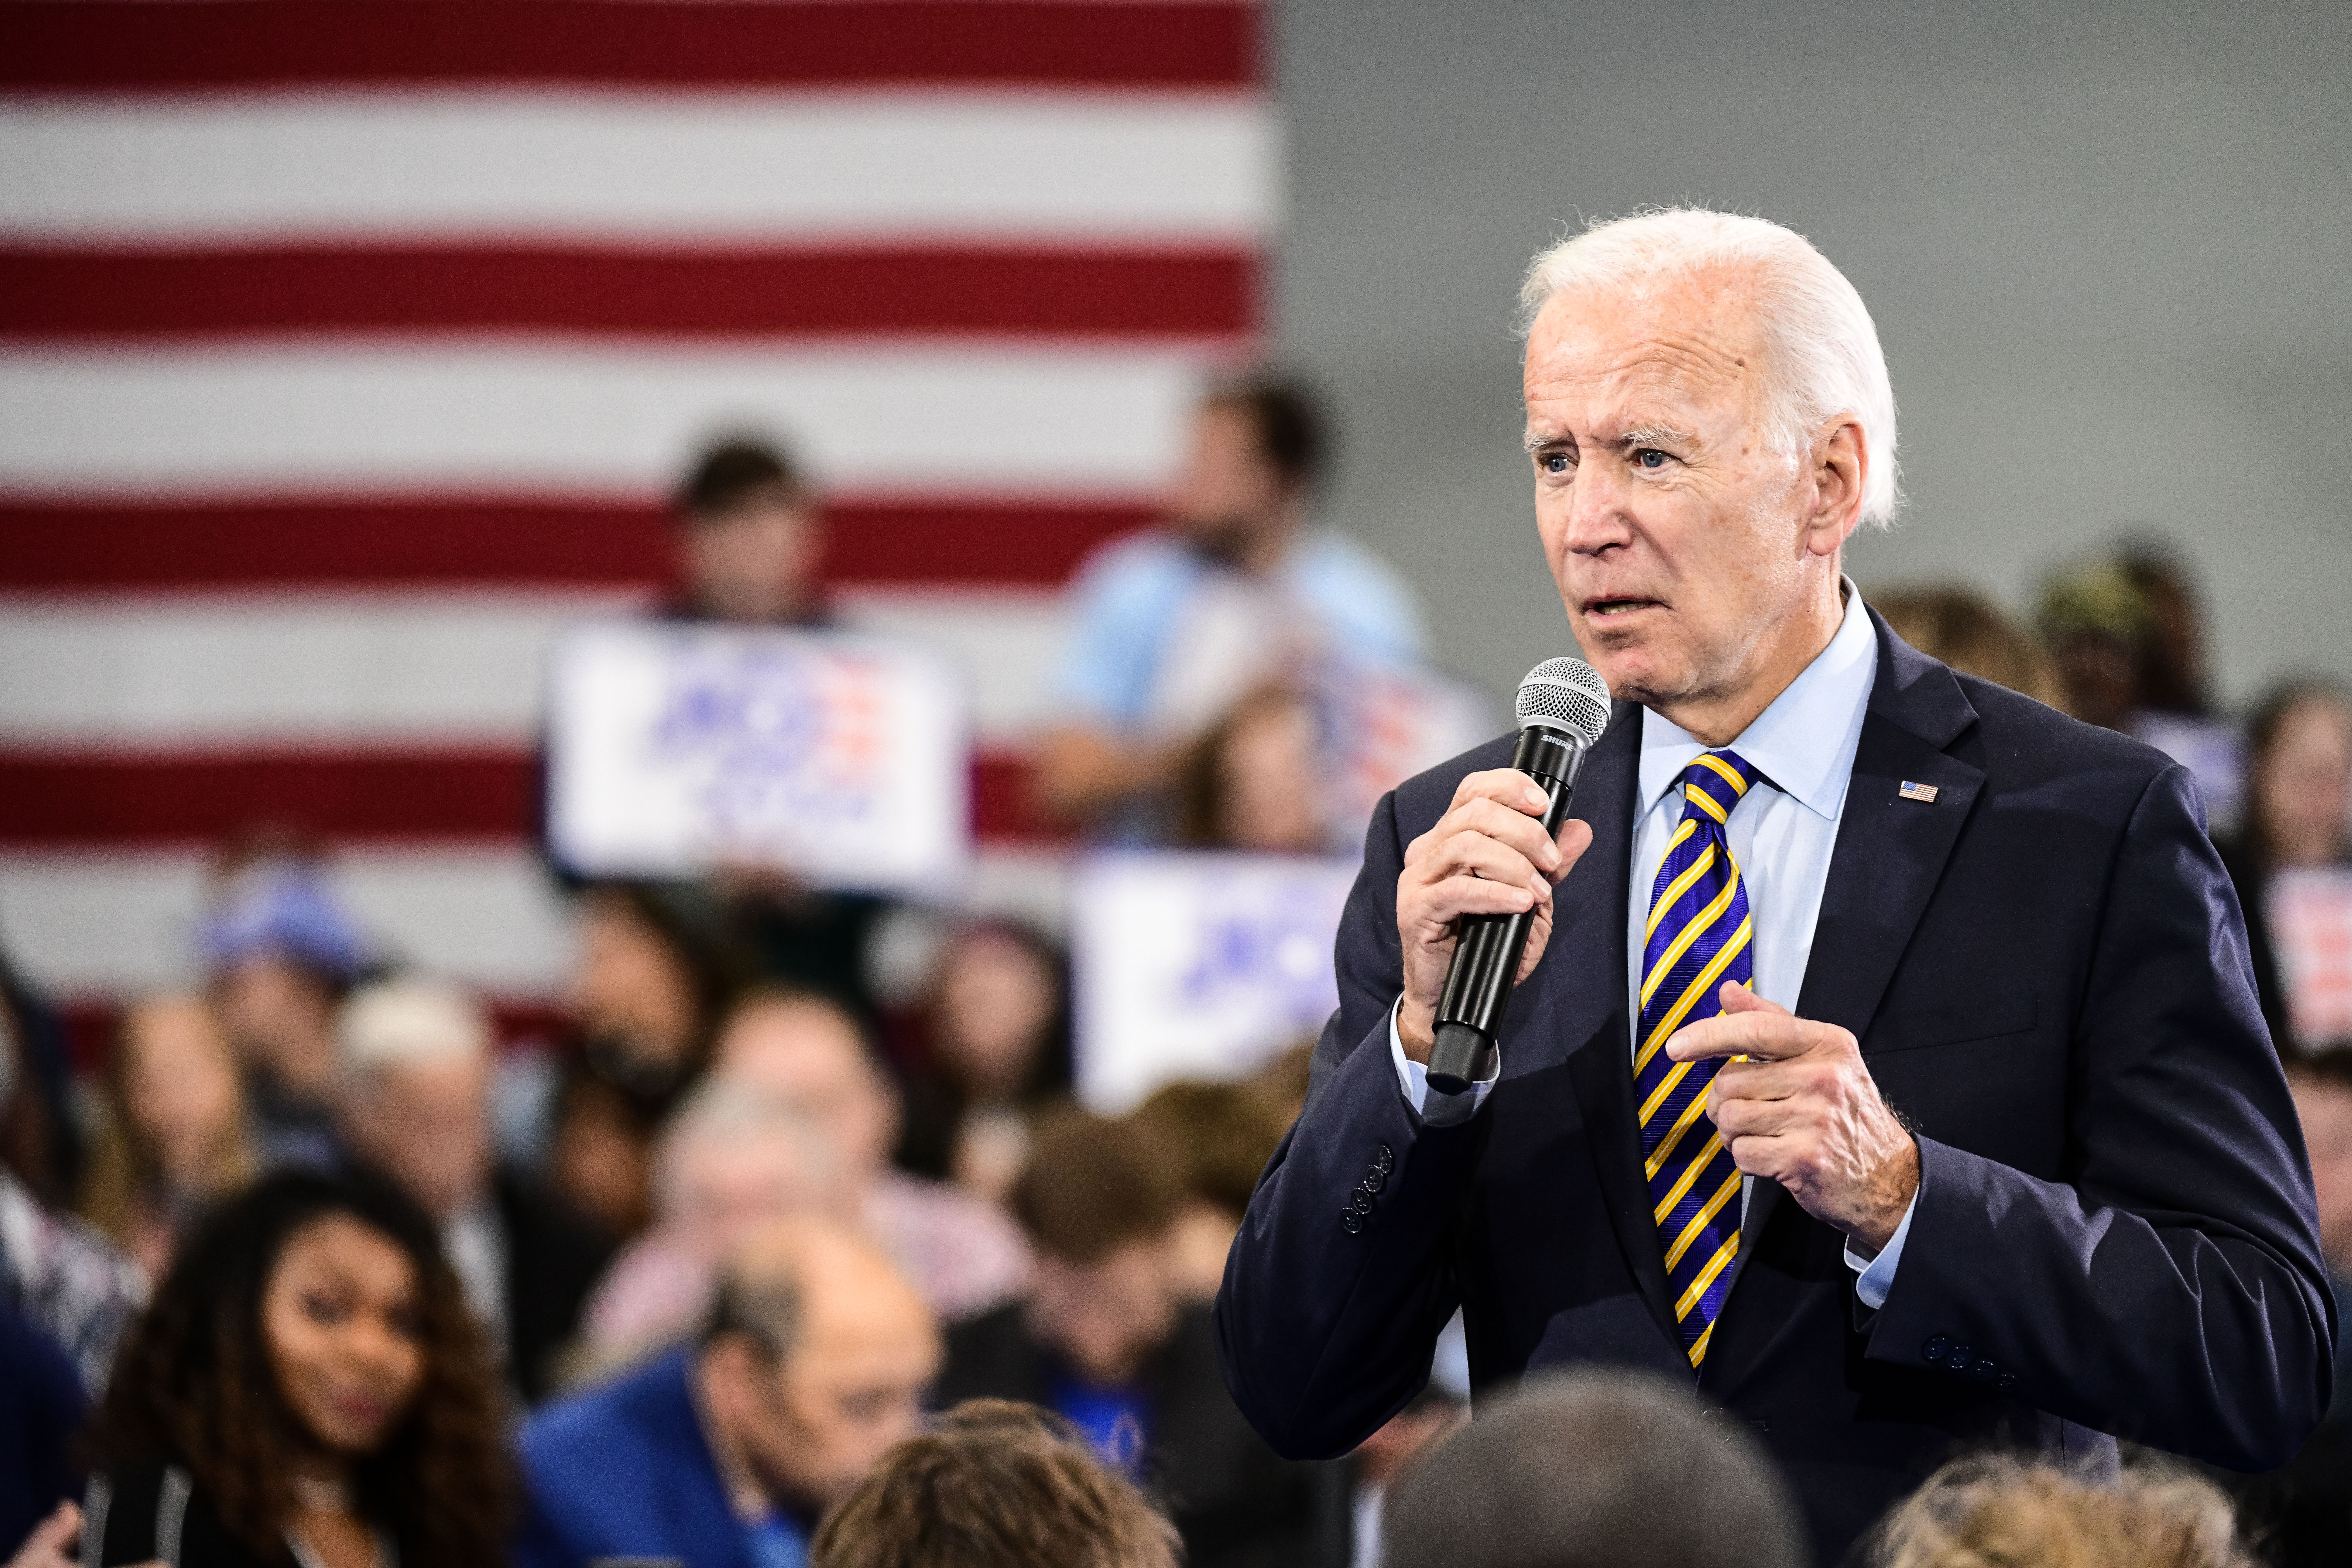 Democratic presidential candidate Joe Biden speaks to the audience during a town hall on Nov. 21, 2019 in Greenwood, South Carolina.